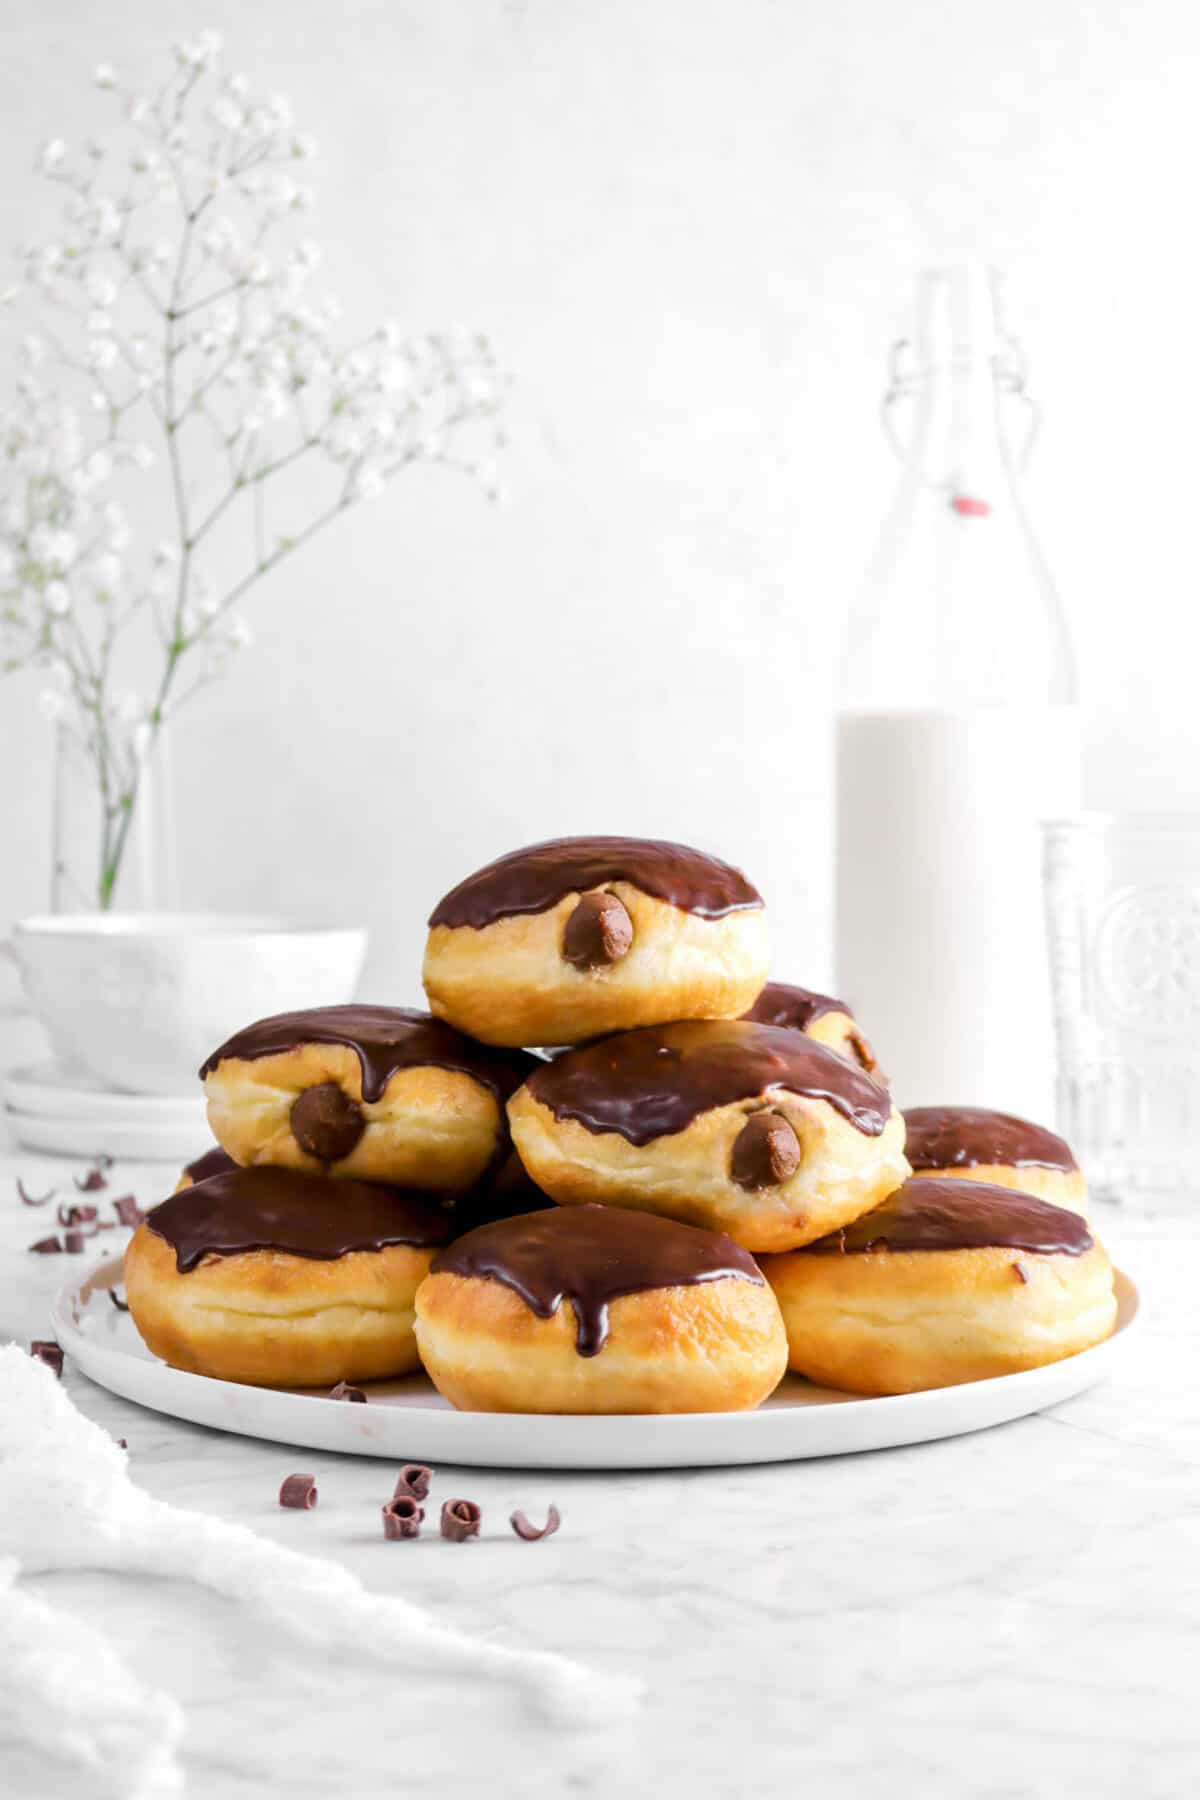 doughnuts stacked on a white plate with milk, a glass, plates, and flowers behind